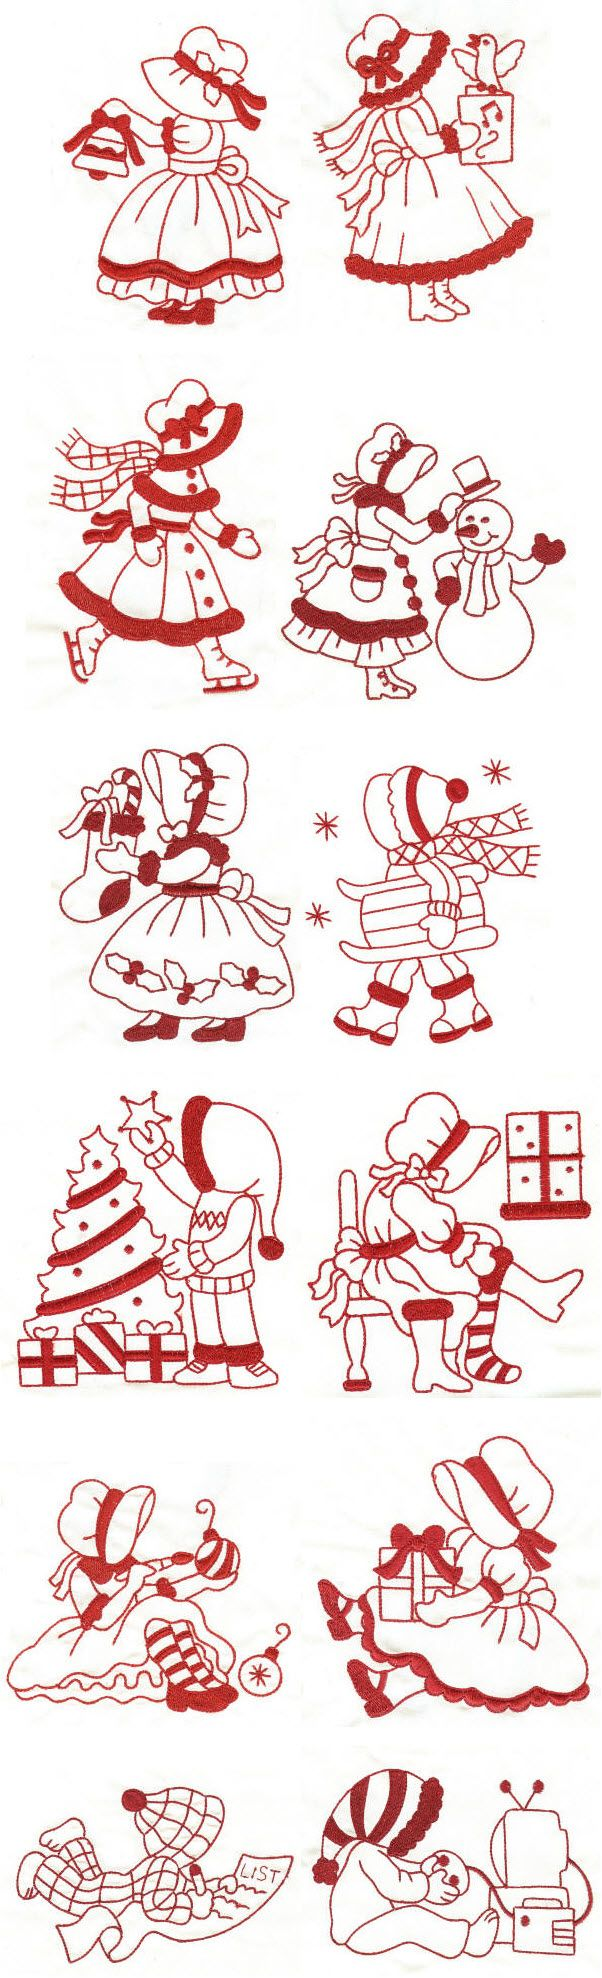 Embroidery | Free Machine Embroidery Designs | A Very Merry Sunbonnet Christmas Redwork